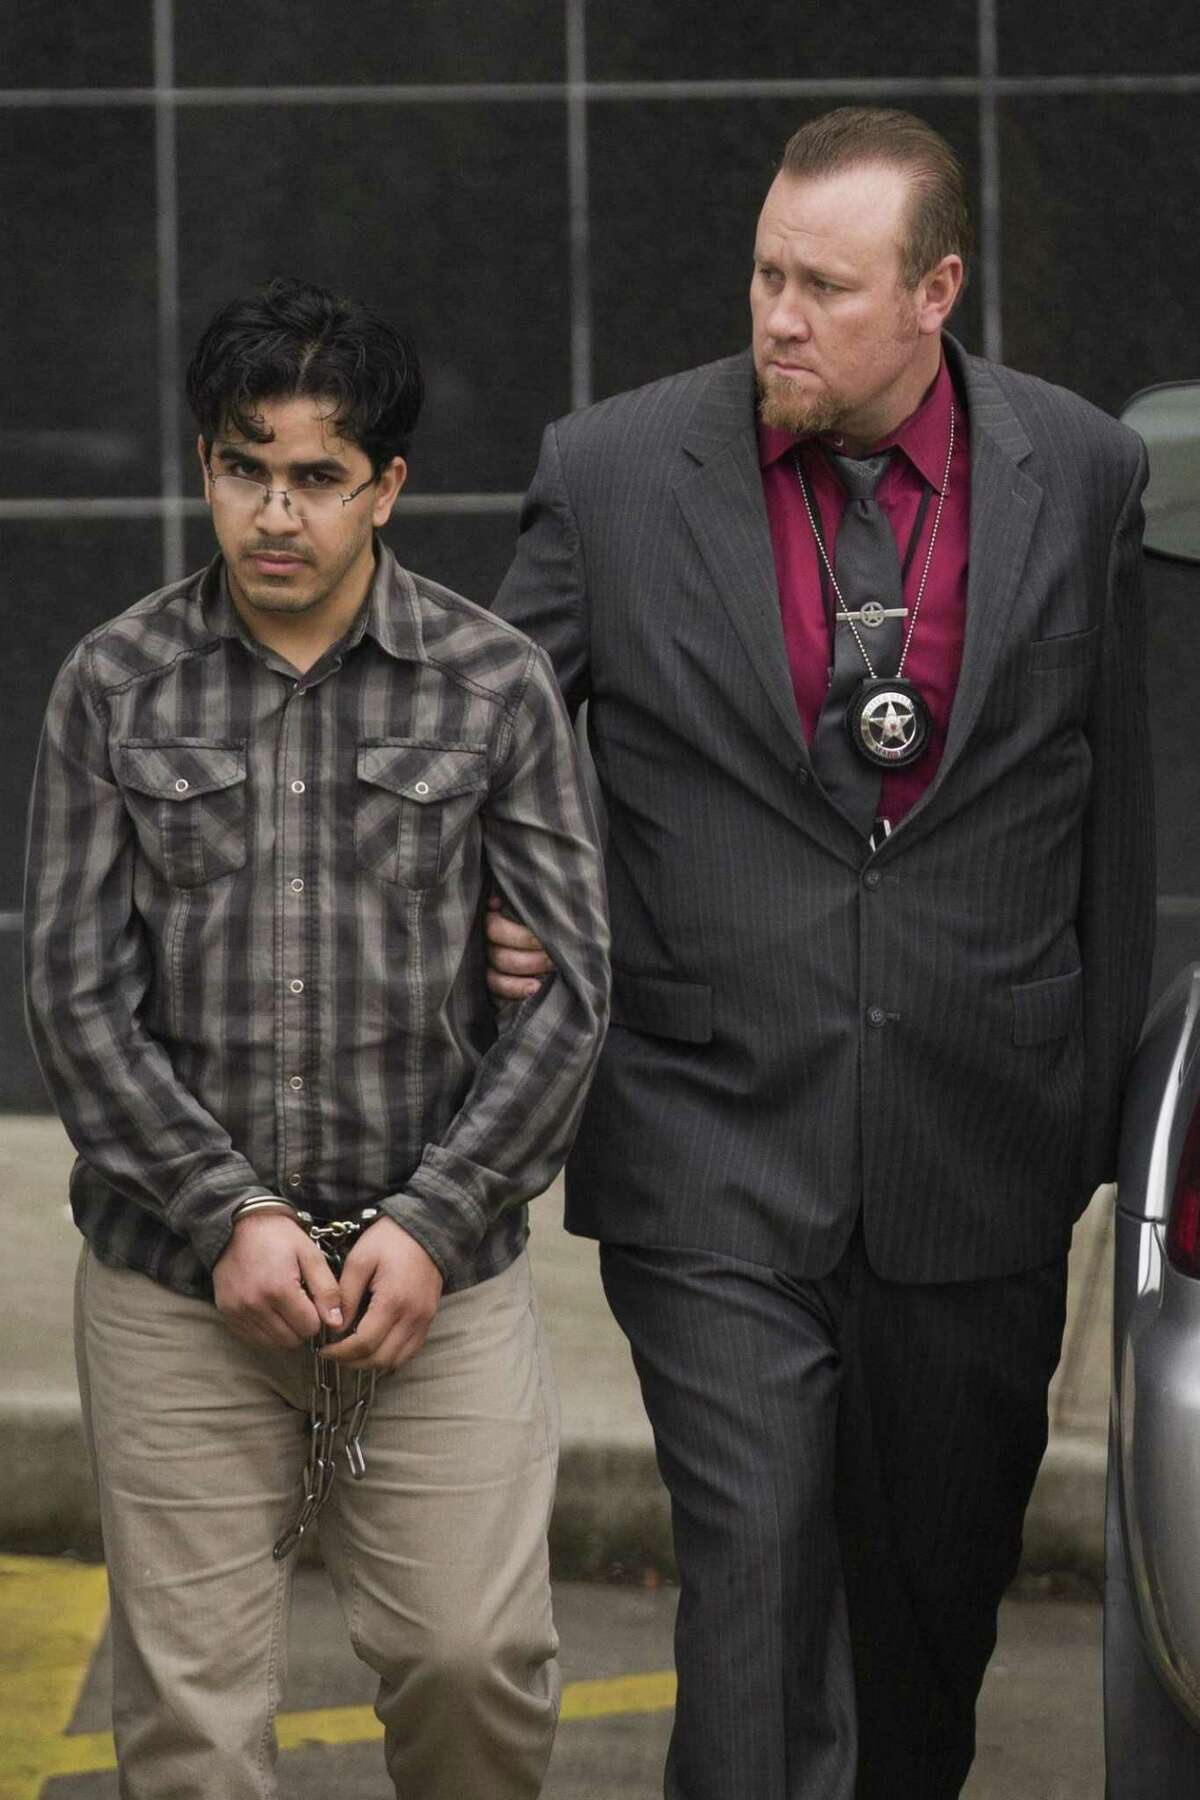 PHOTOS: ISIS supporter Omar Faraj Saeed Al Hardan, left, walks out of the Bob Casey Federal Courthouse accompanied by U.S. Marshals, Friday, Jan. 8, 2016, in Houston. >>See more photos of the convicted ISIS backer who lived here in Houston ...